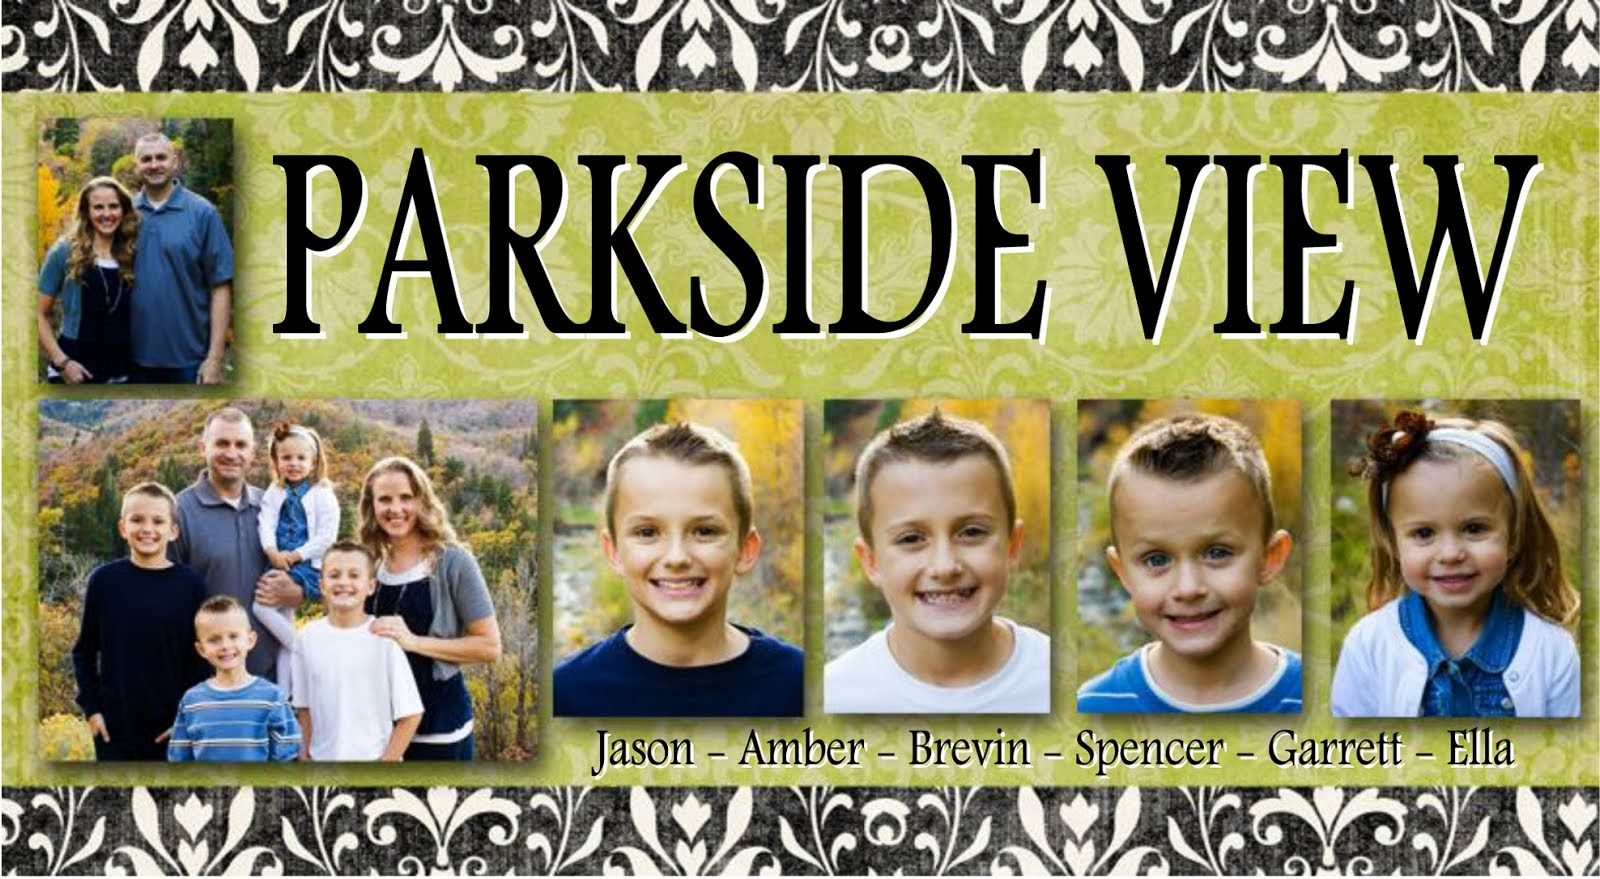 Parkside View